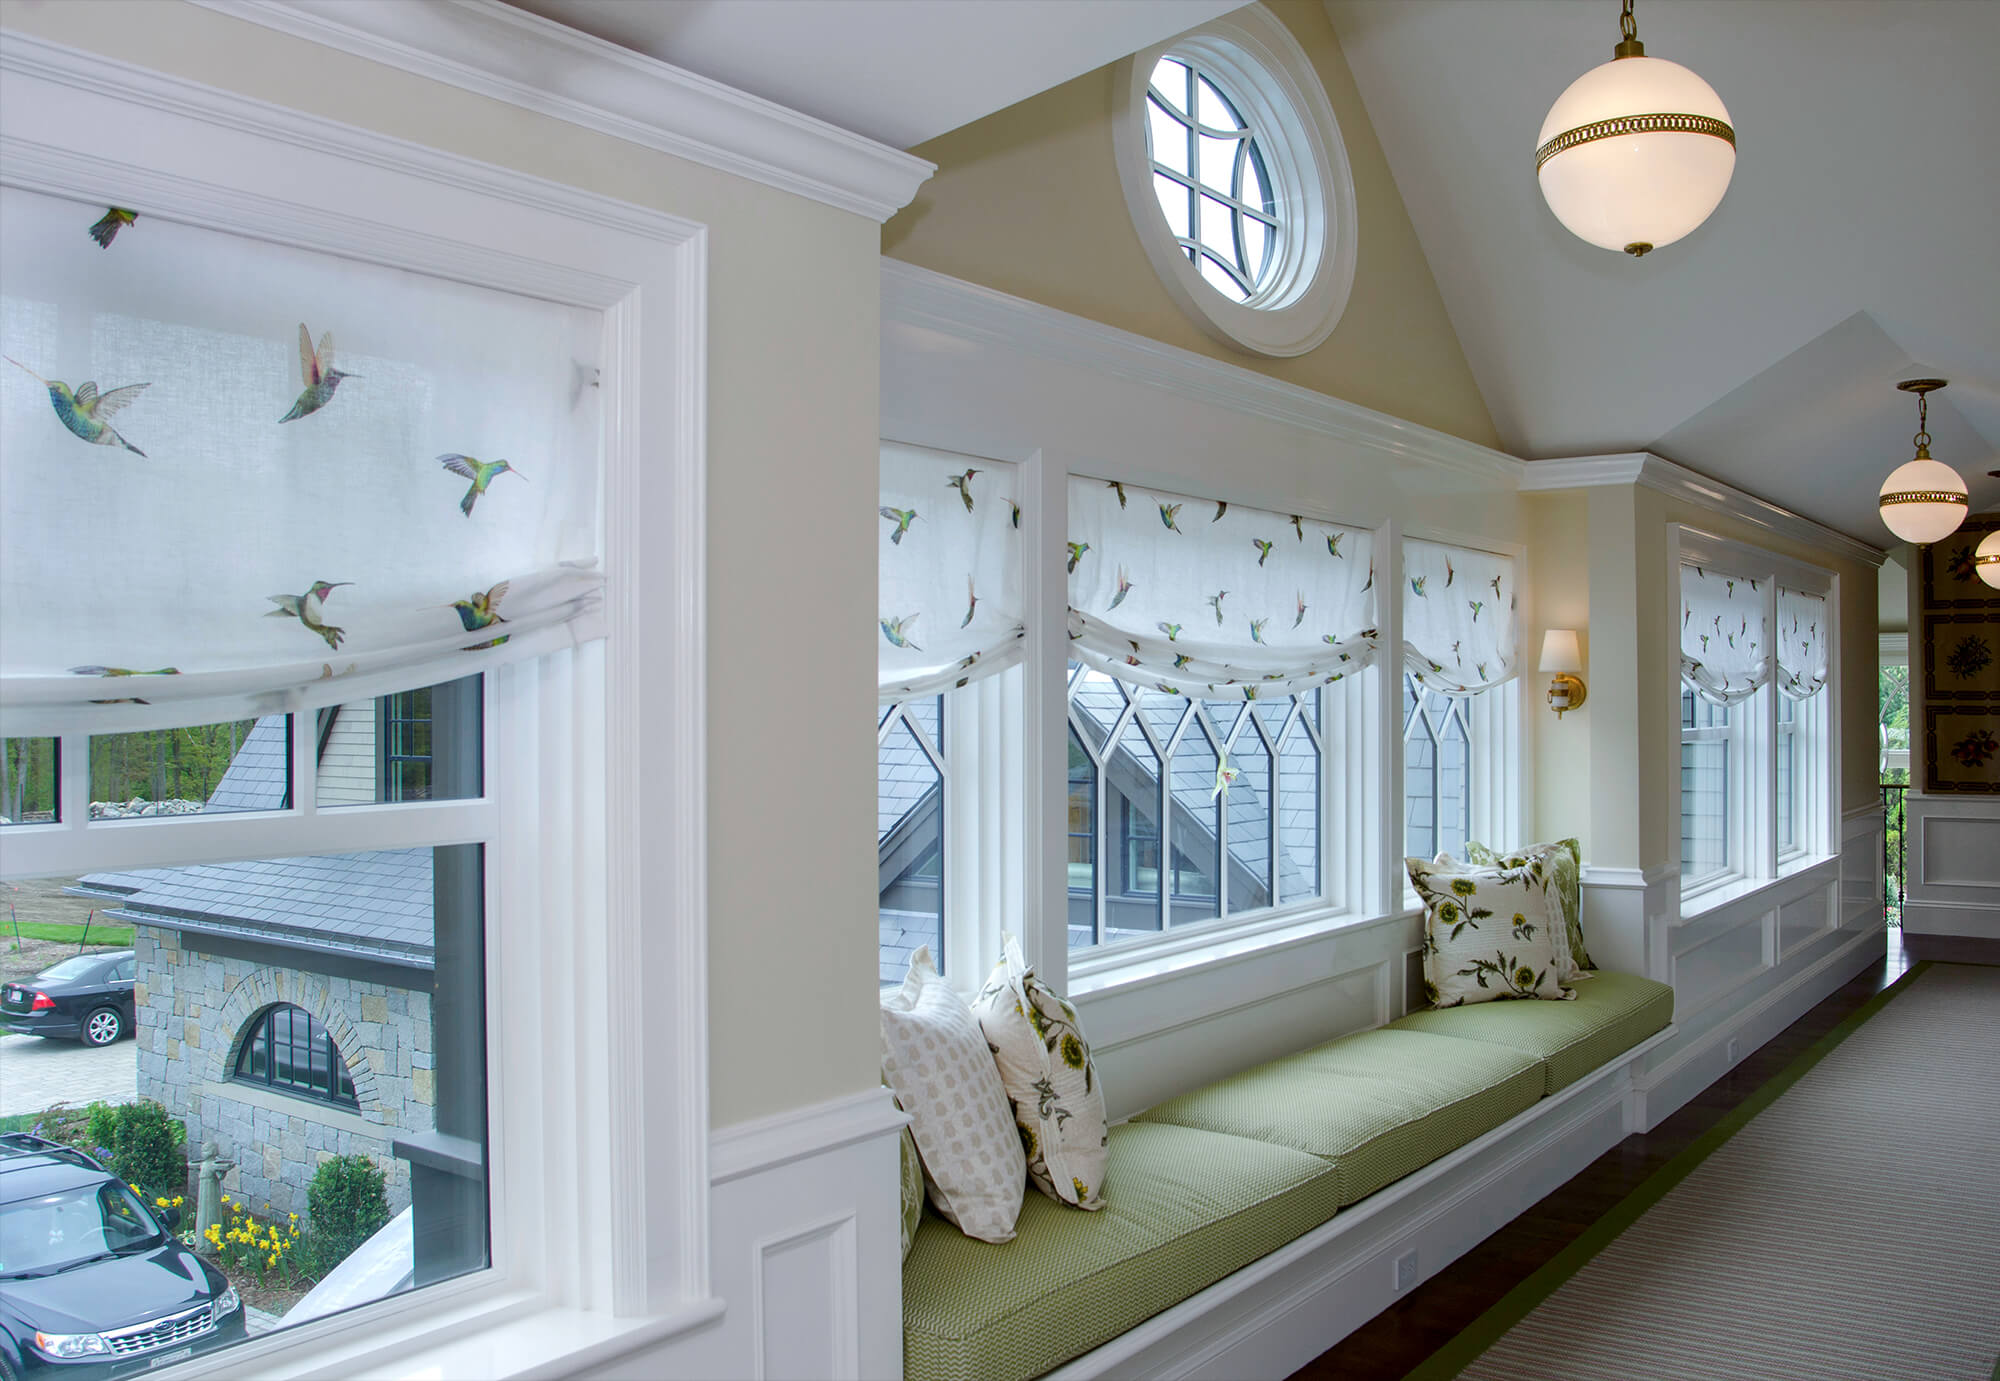 How To Choose The Correct Size Crown Moulding Horner Millwork